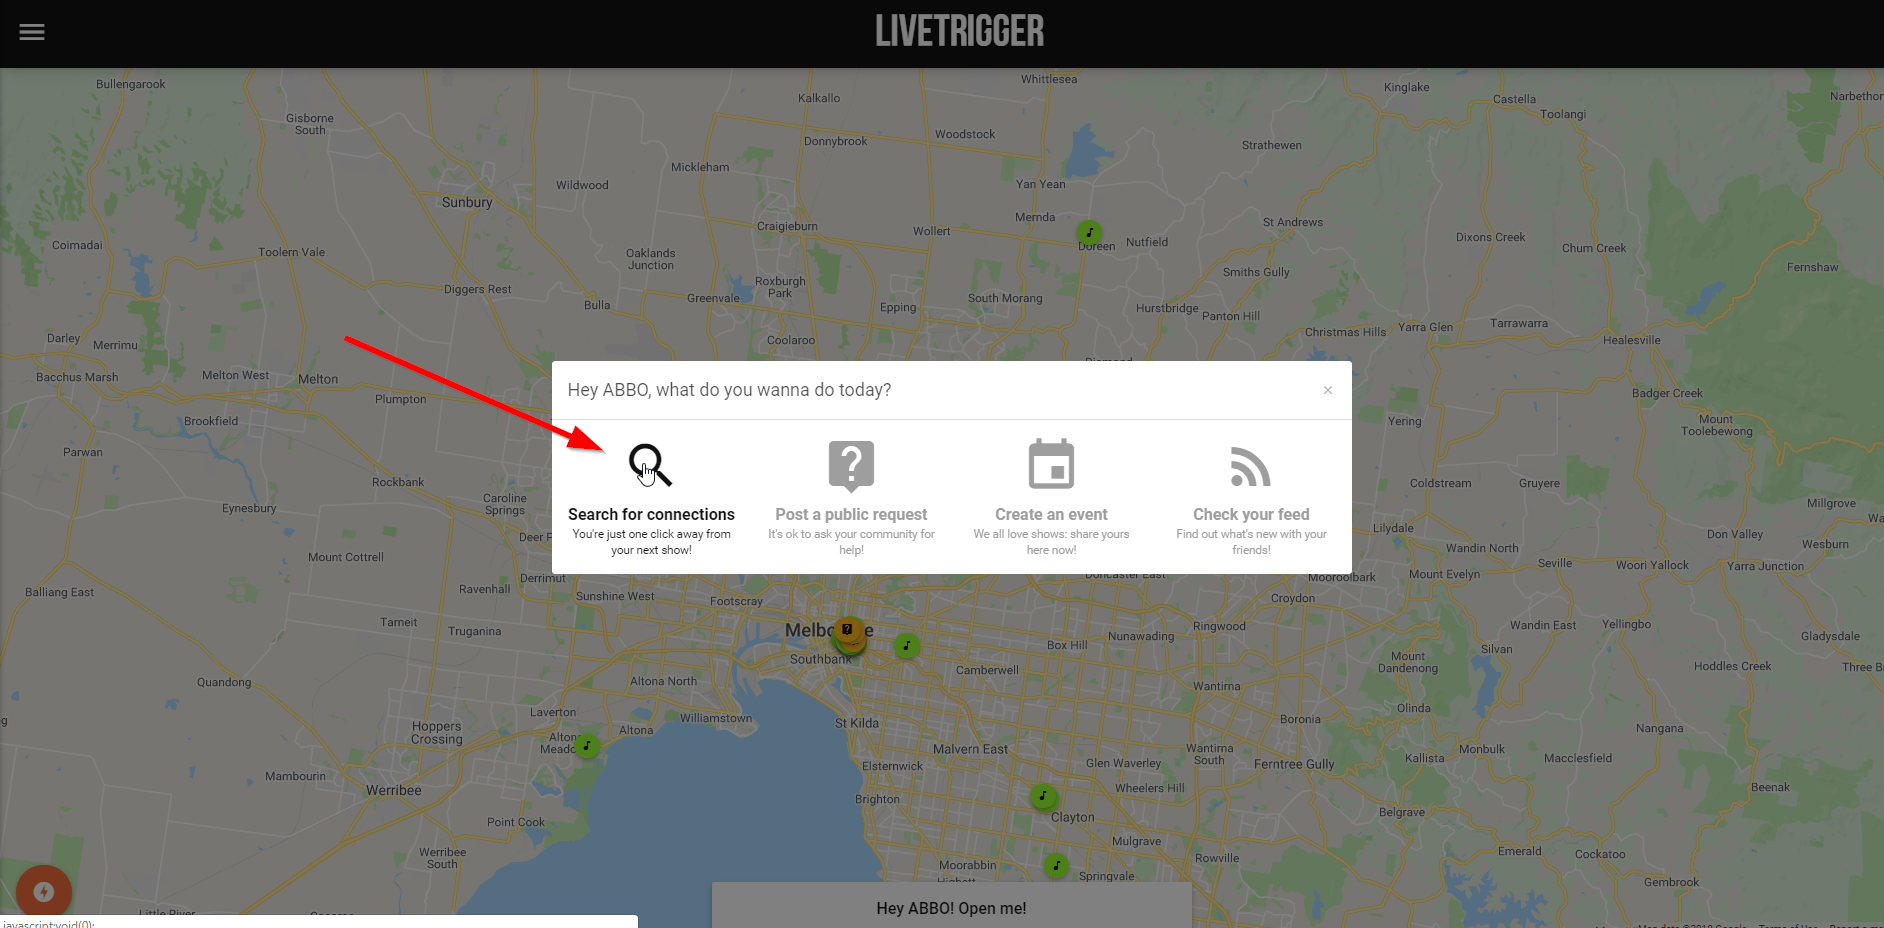 The first step you need to book shows on LiveTrigger